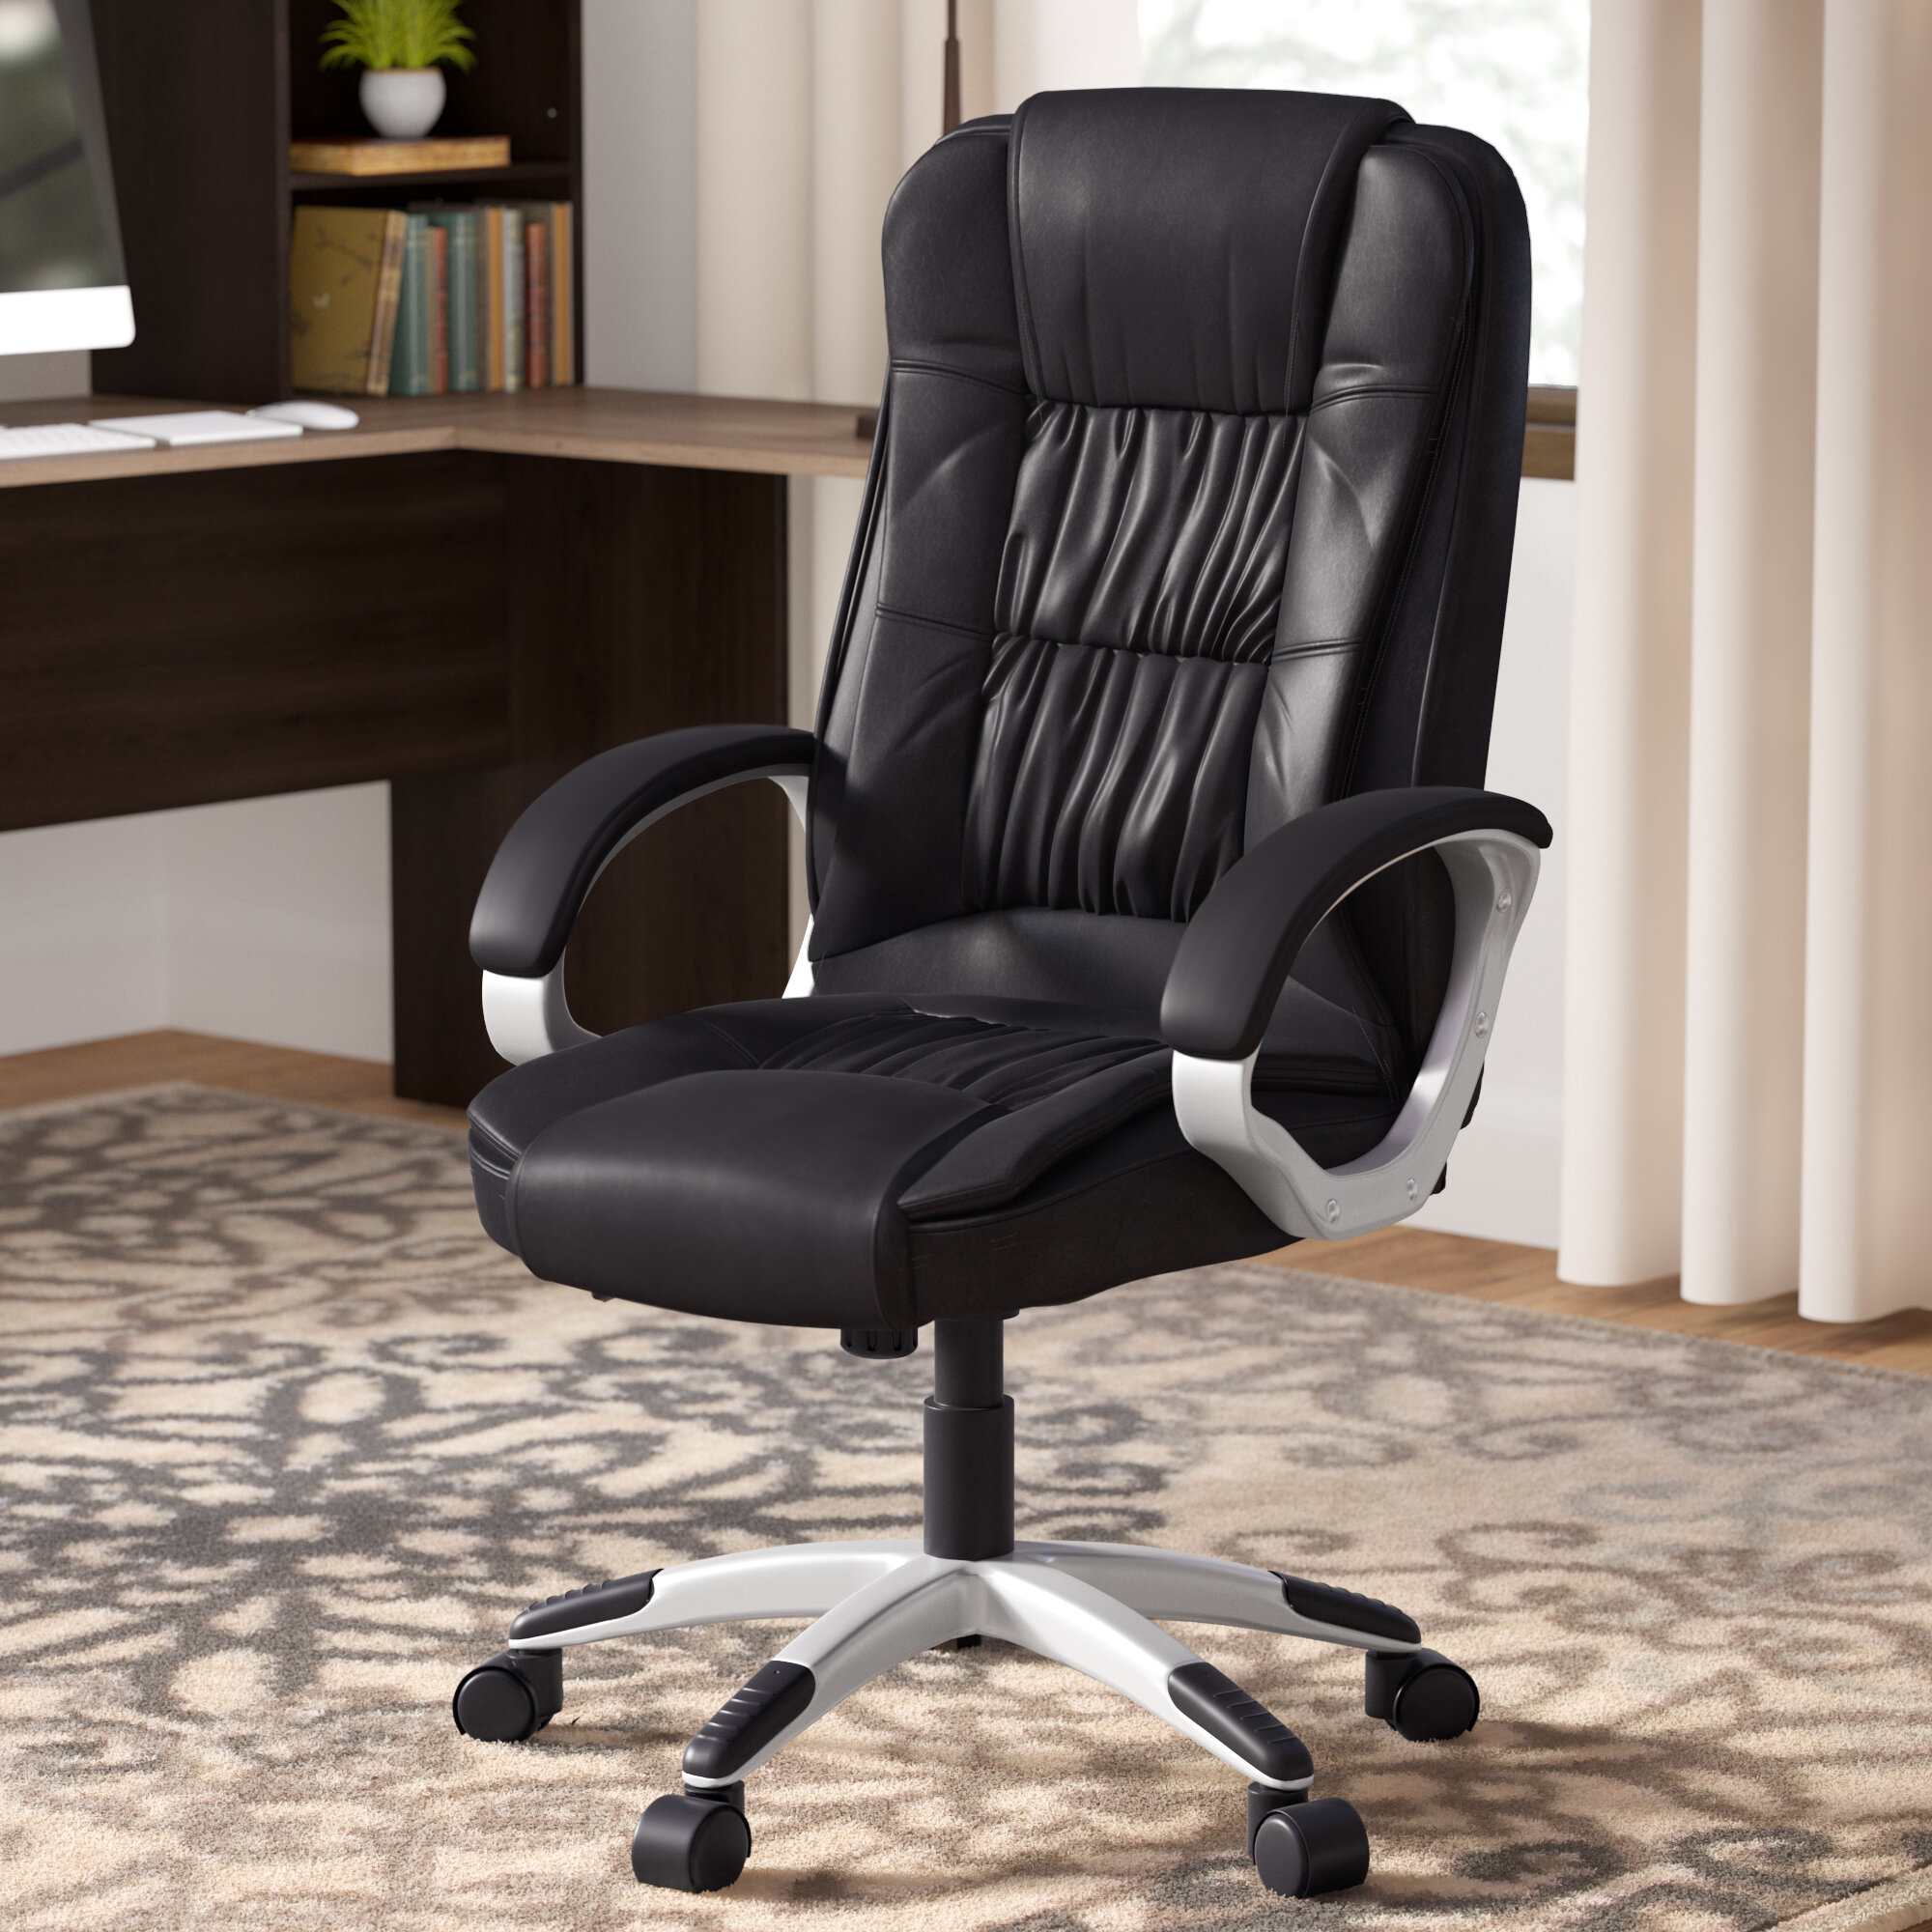 rev black line ergonomic edition series vertagear style office chair main p products racing gaming white